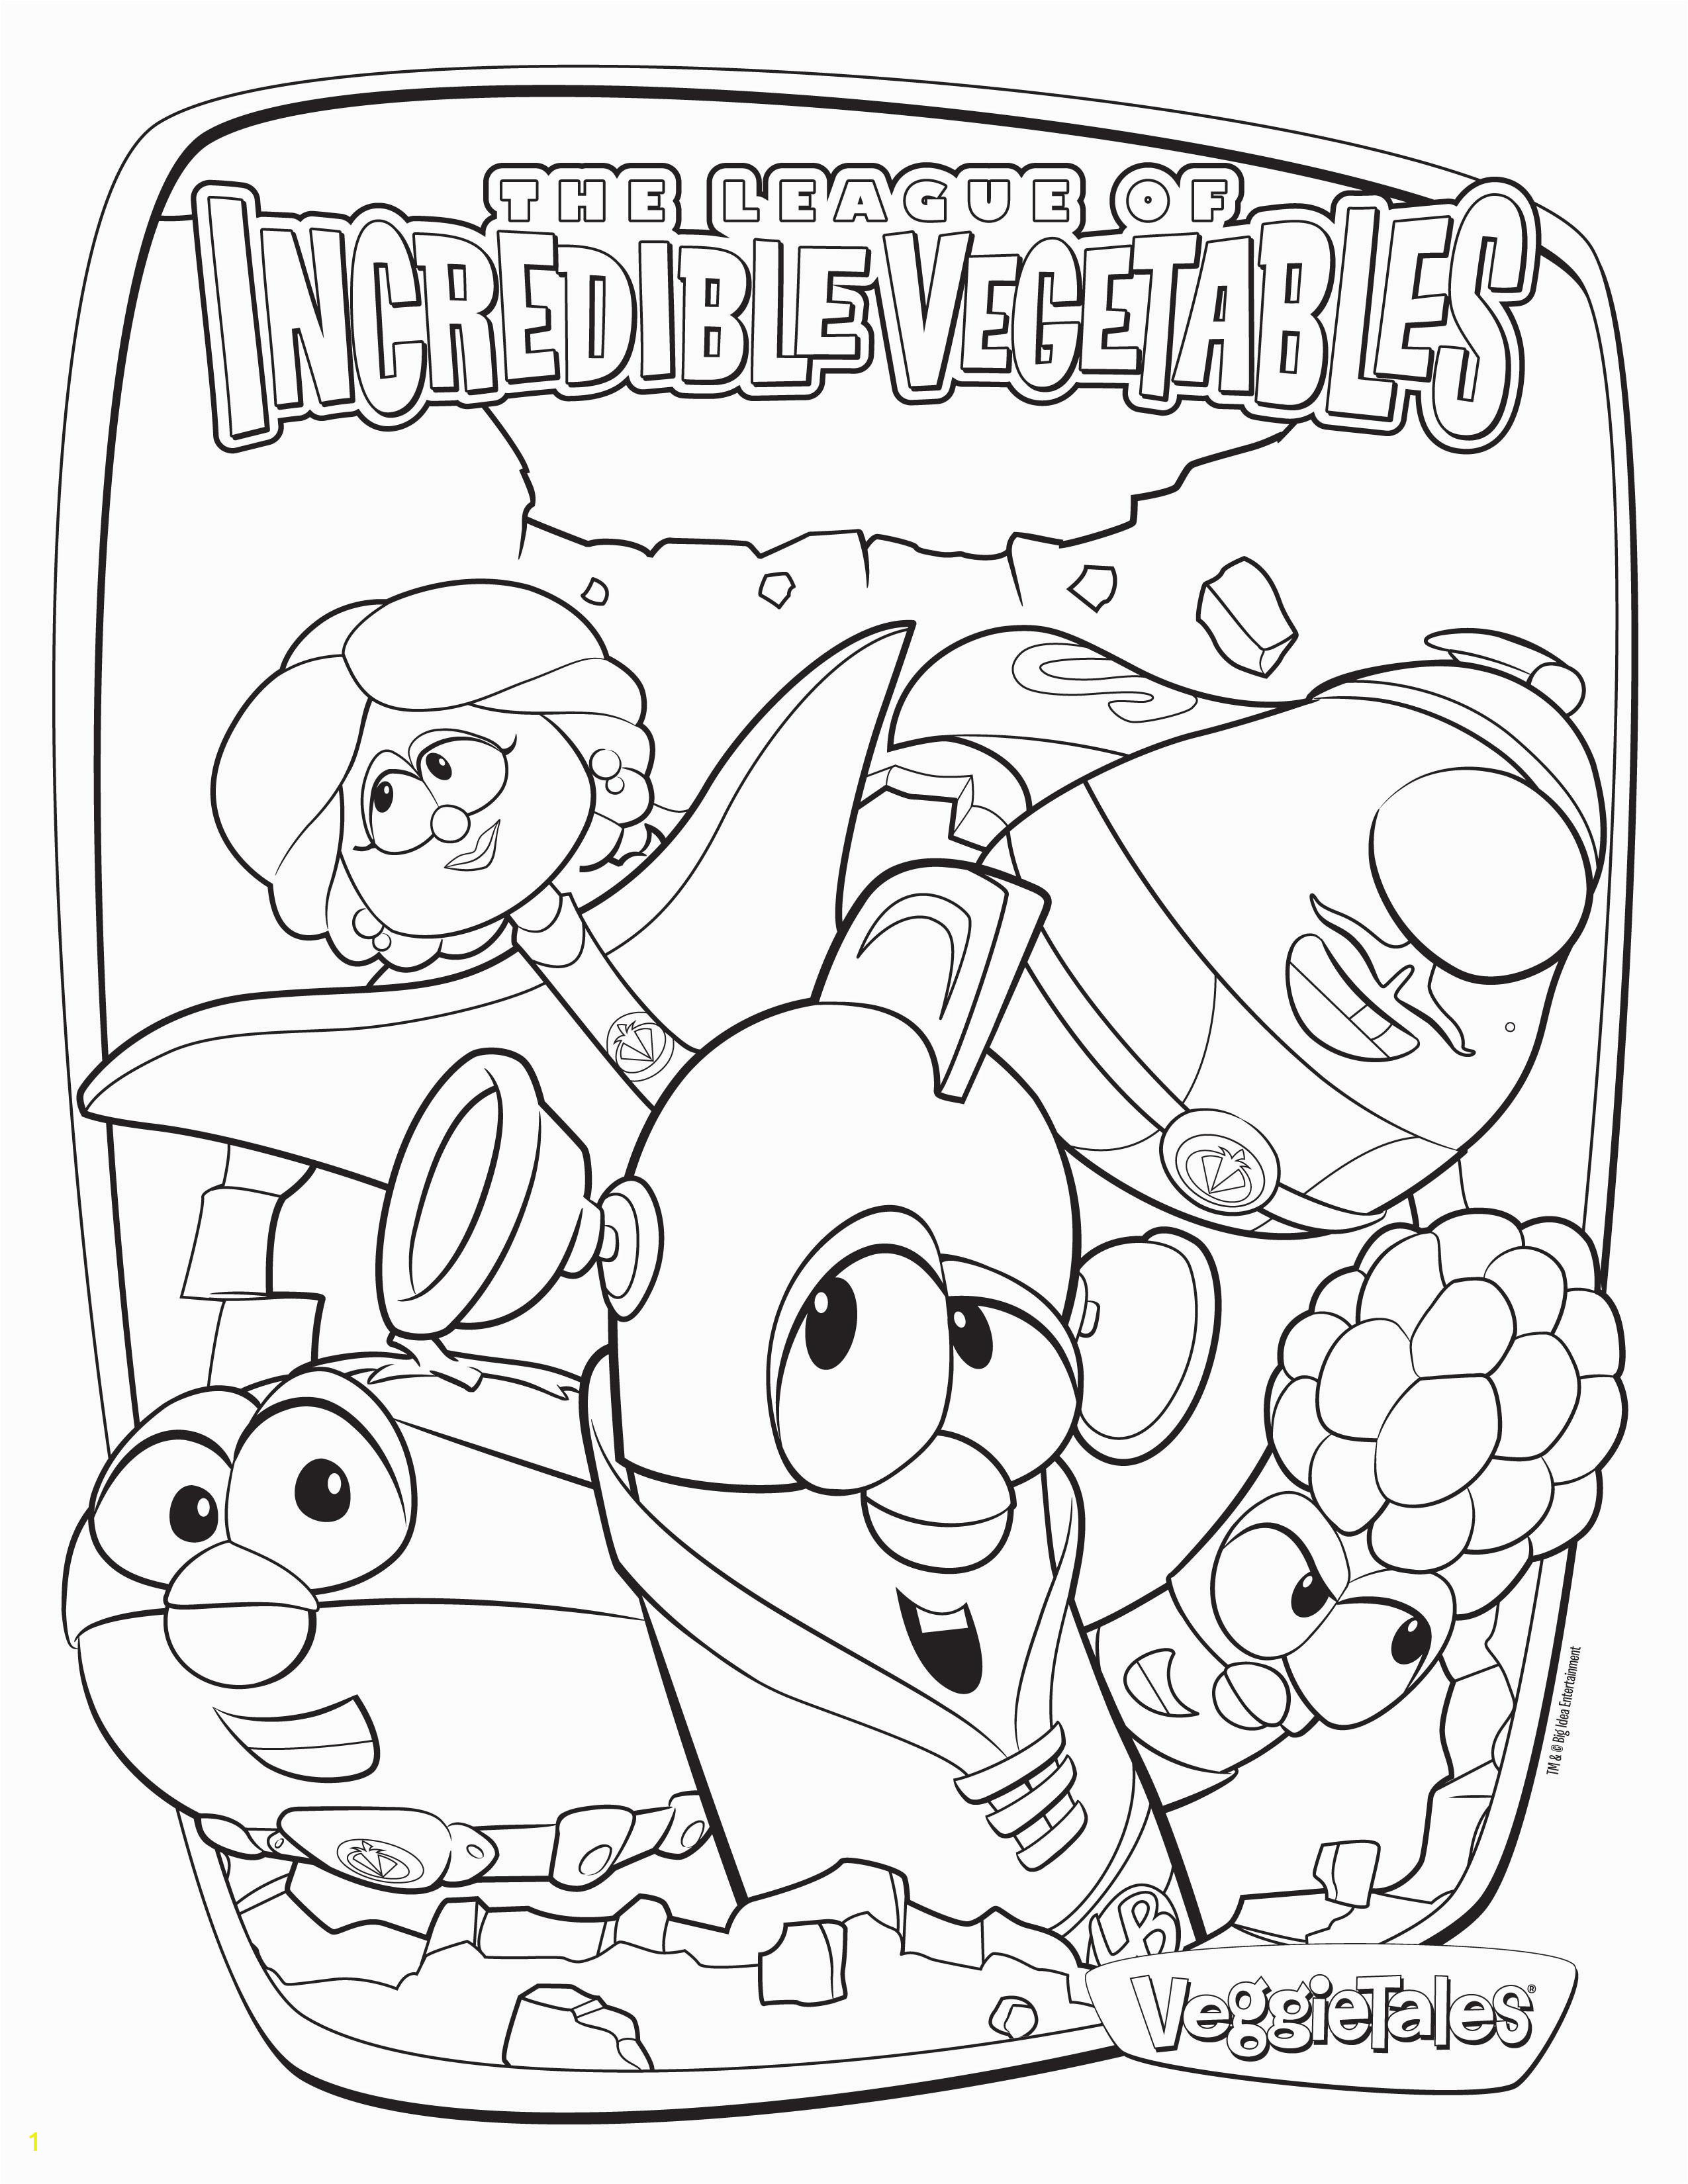 Veggie Tales Larry Boy Coloring Pages 19 Luxury Veggie Tales Larry Boy Coloring Pages Pexels